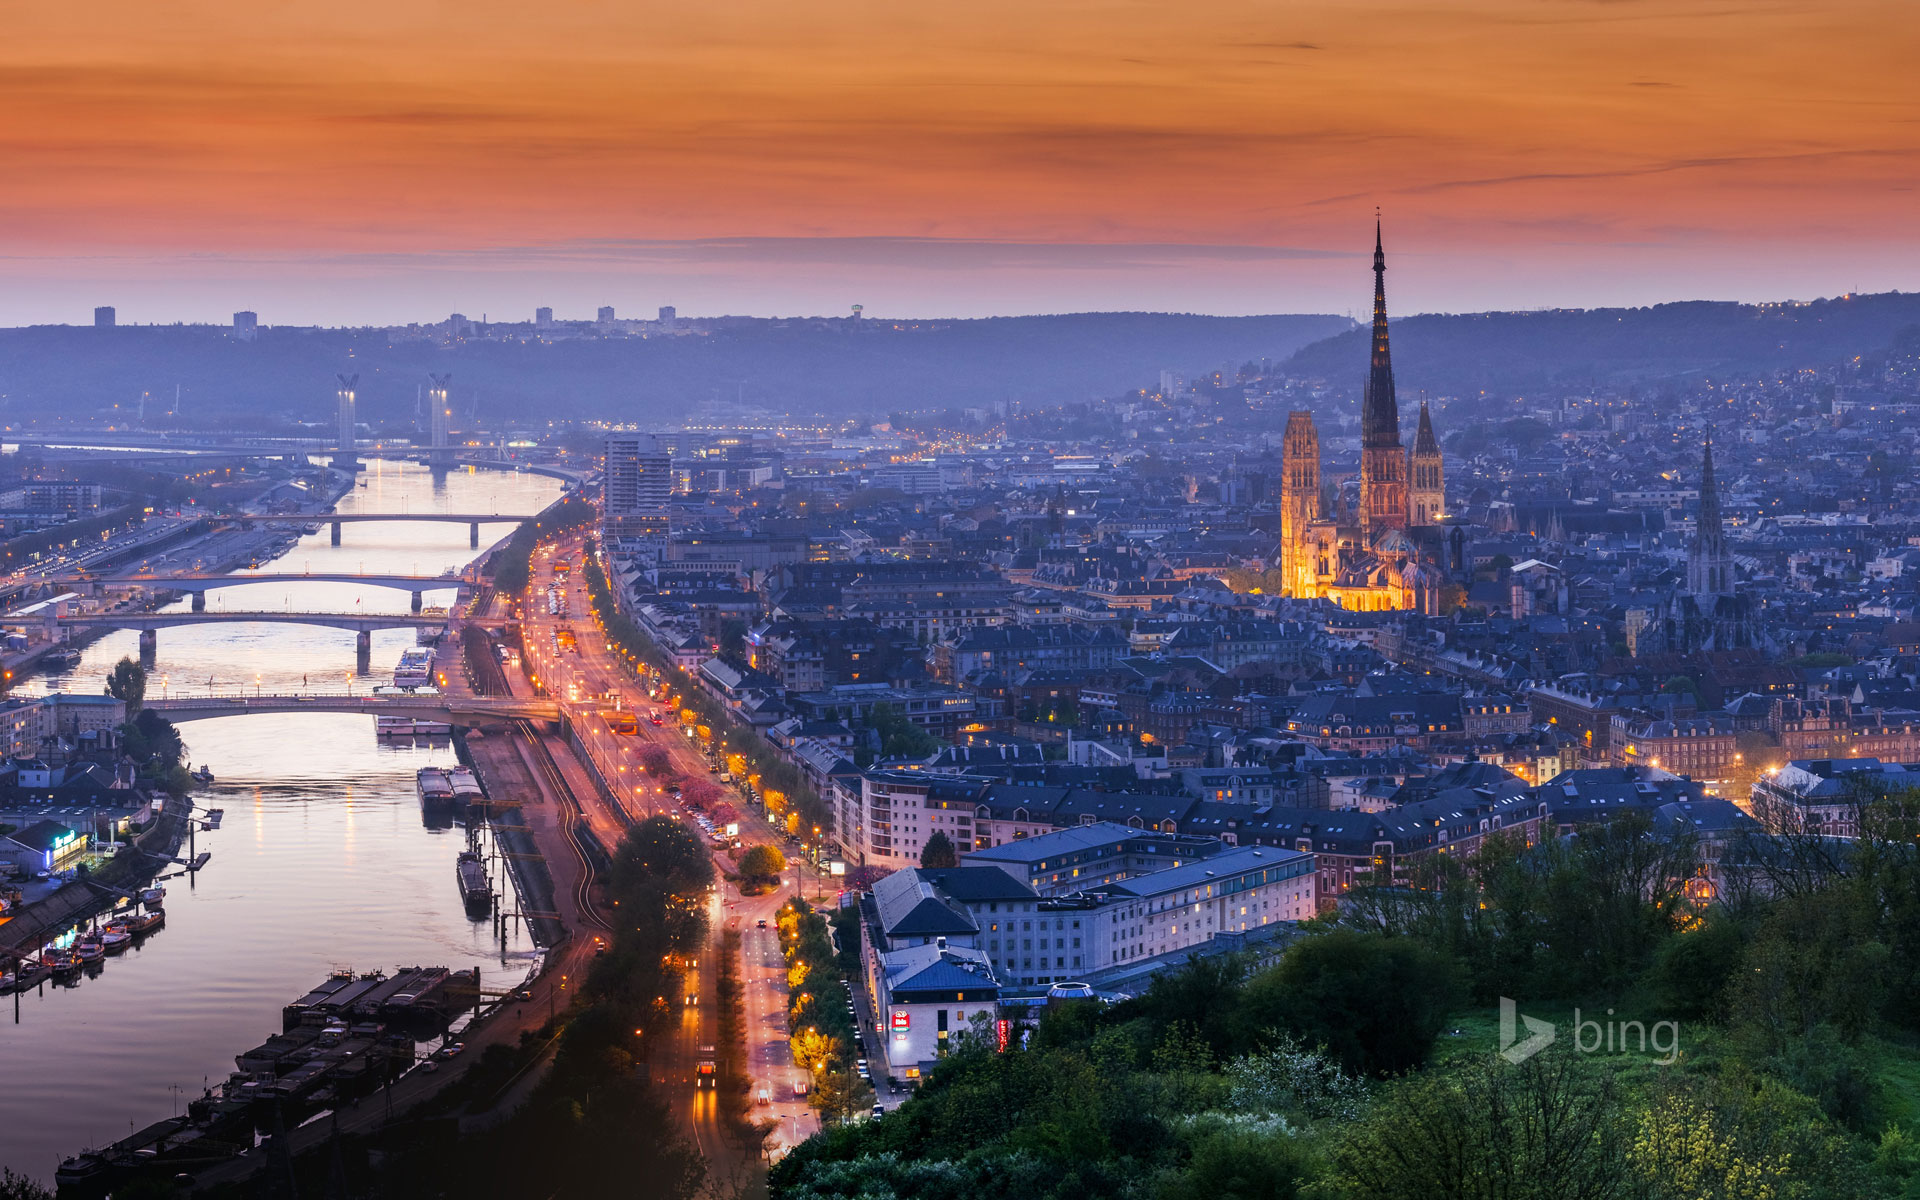 Rouen Normandy France Tim Gartsideage fotostock   Bing 1920x1200